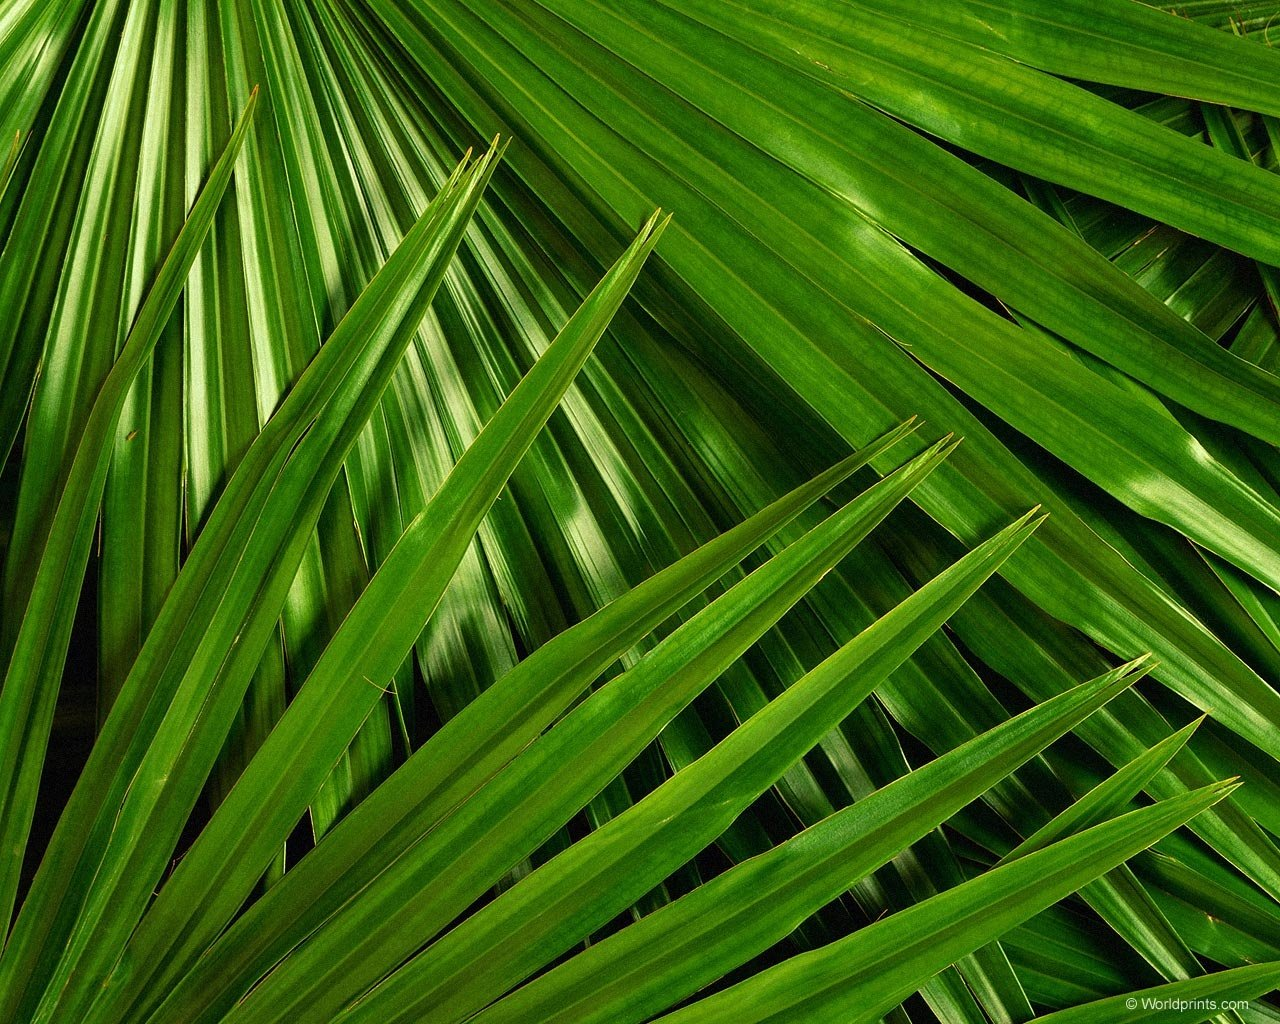 palm leaves WallpaperSuggestcom wallpapers 1280x1024